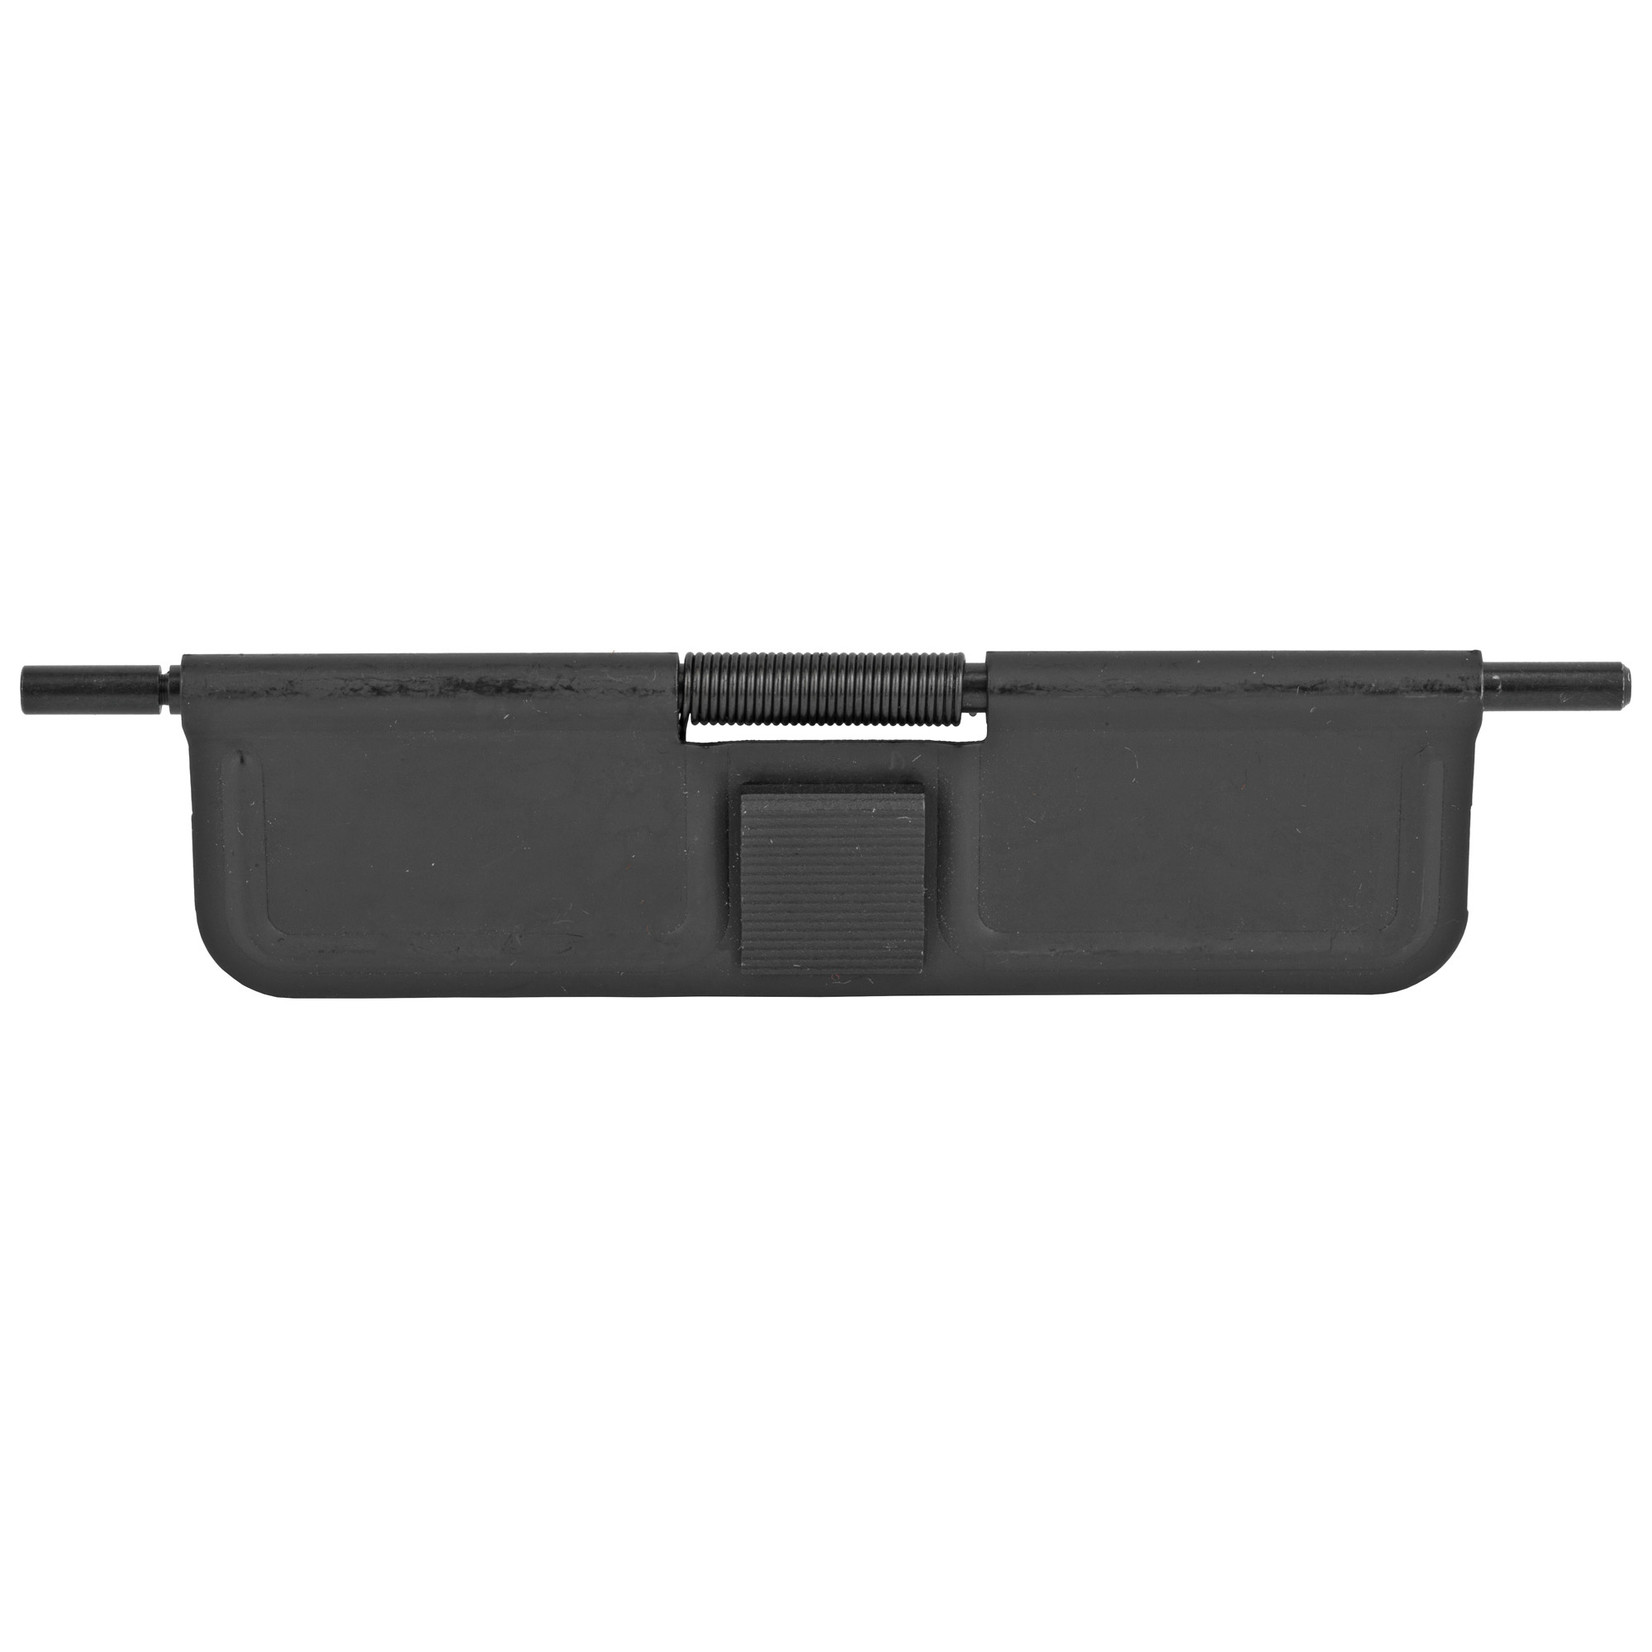 Bastion Bastion, Don't Tread On Me, AR-15 Ejection Port Dust Cover